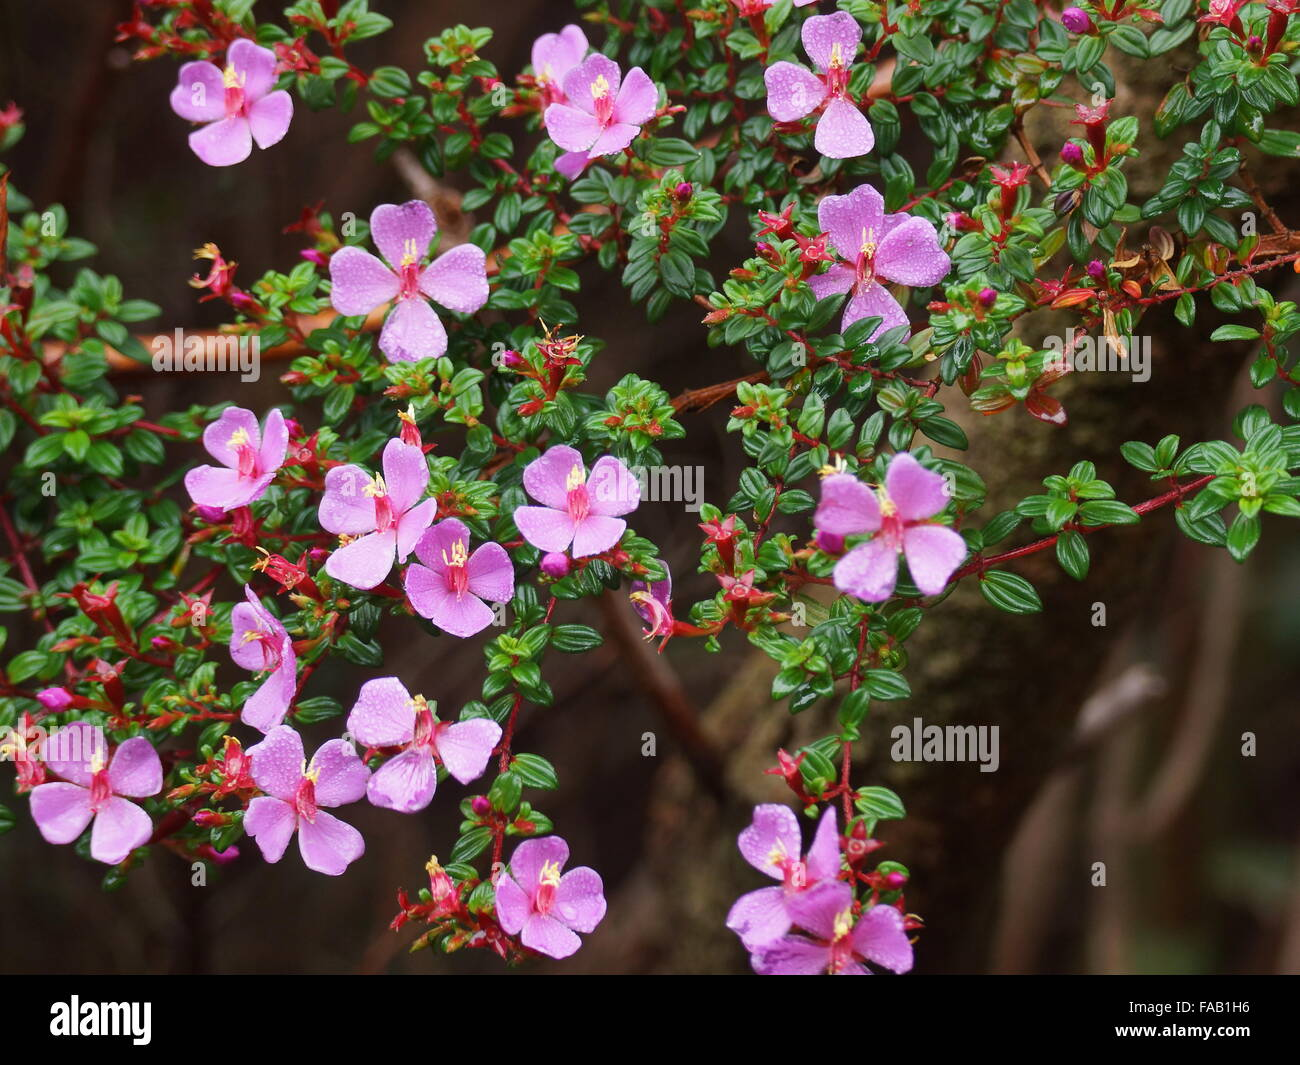 Pink flowers on a background of green leaves. Monochaetum vulcanicum , Melastomataceae. Costa Rica, Alajuela Province, - Stock Image